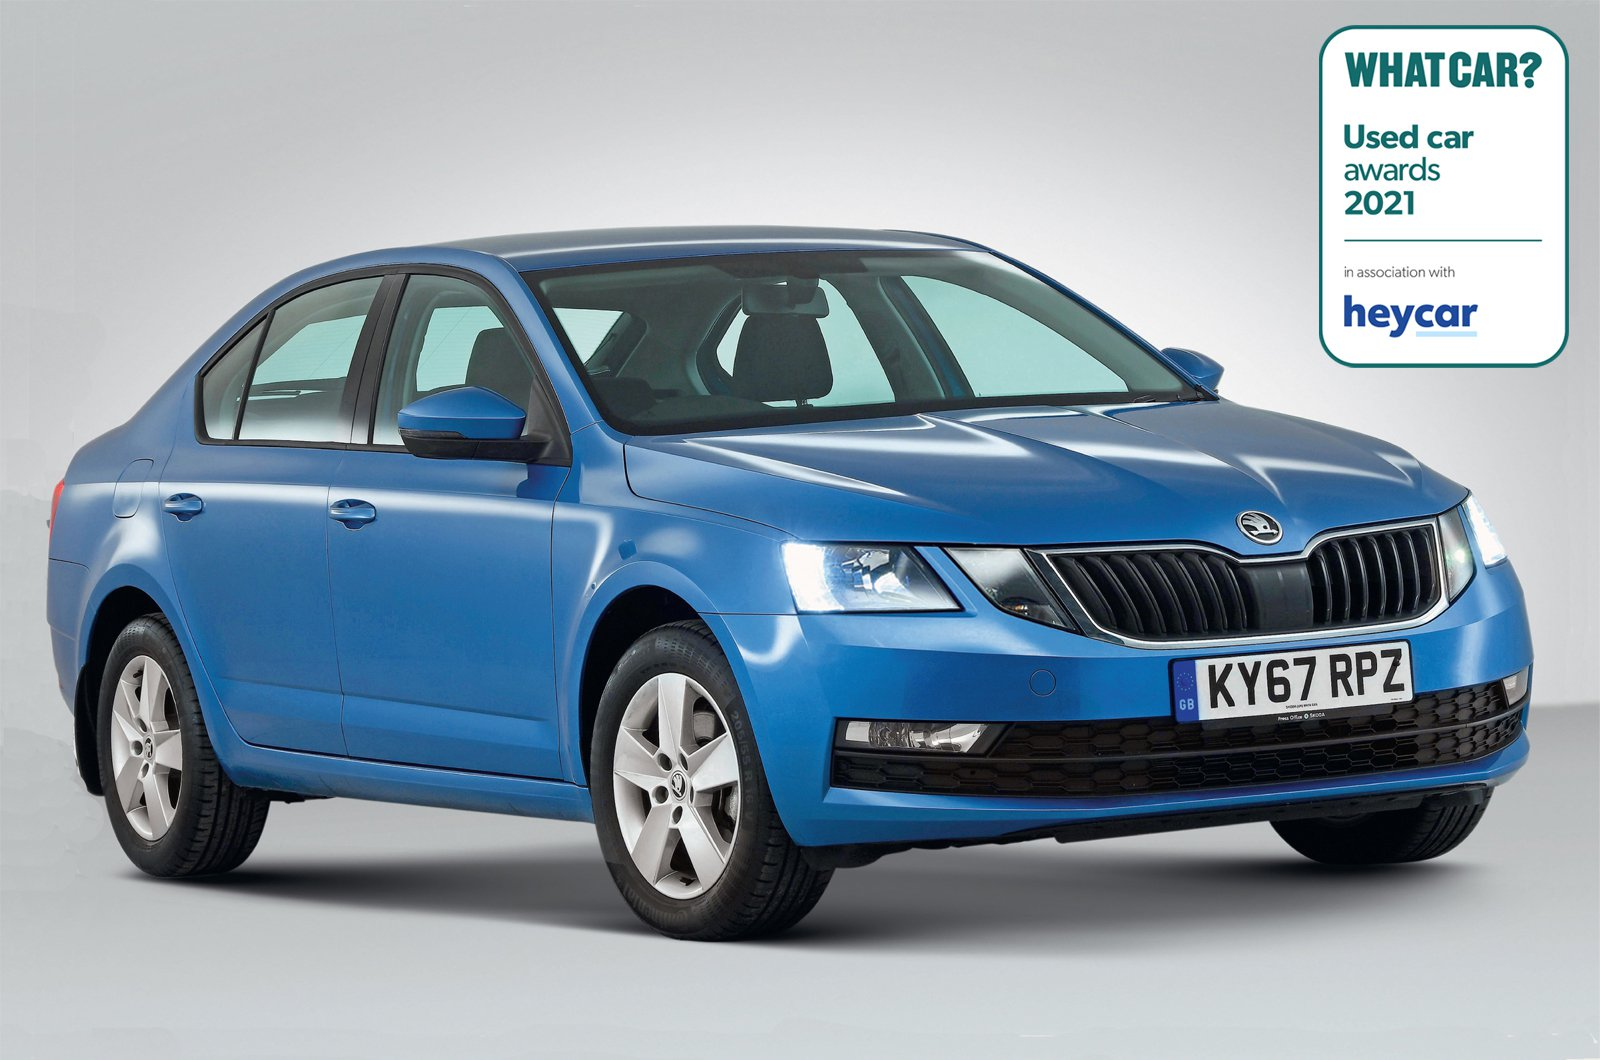 Used Car Awards 2021 - Skoda Octavia